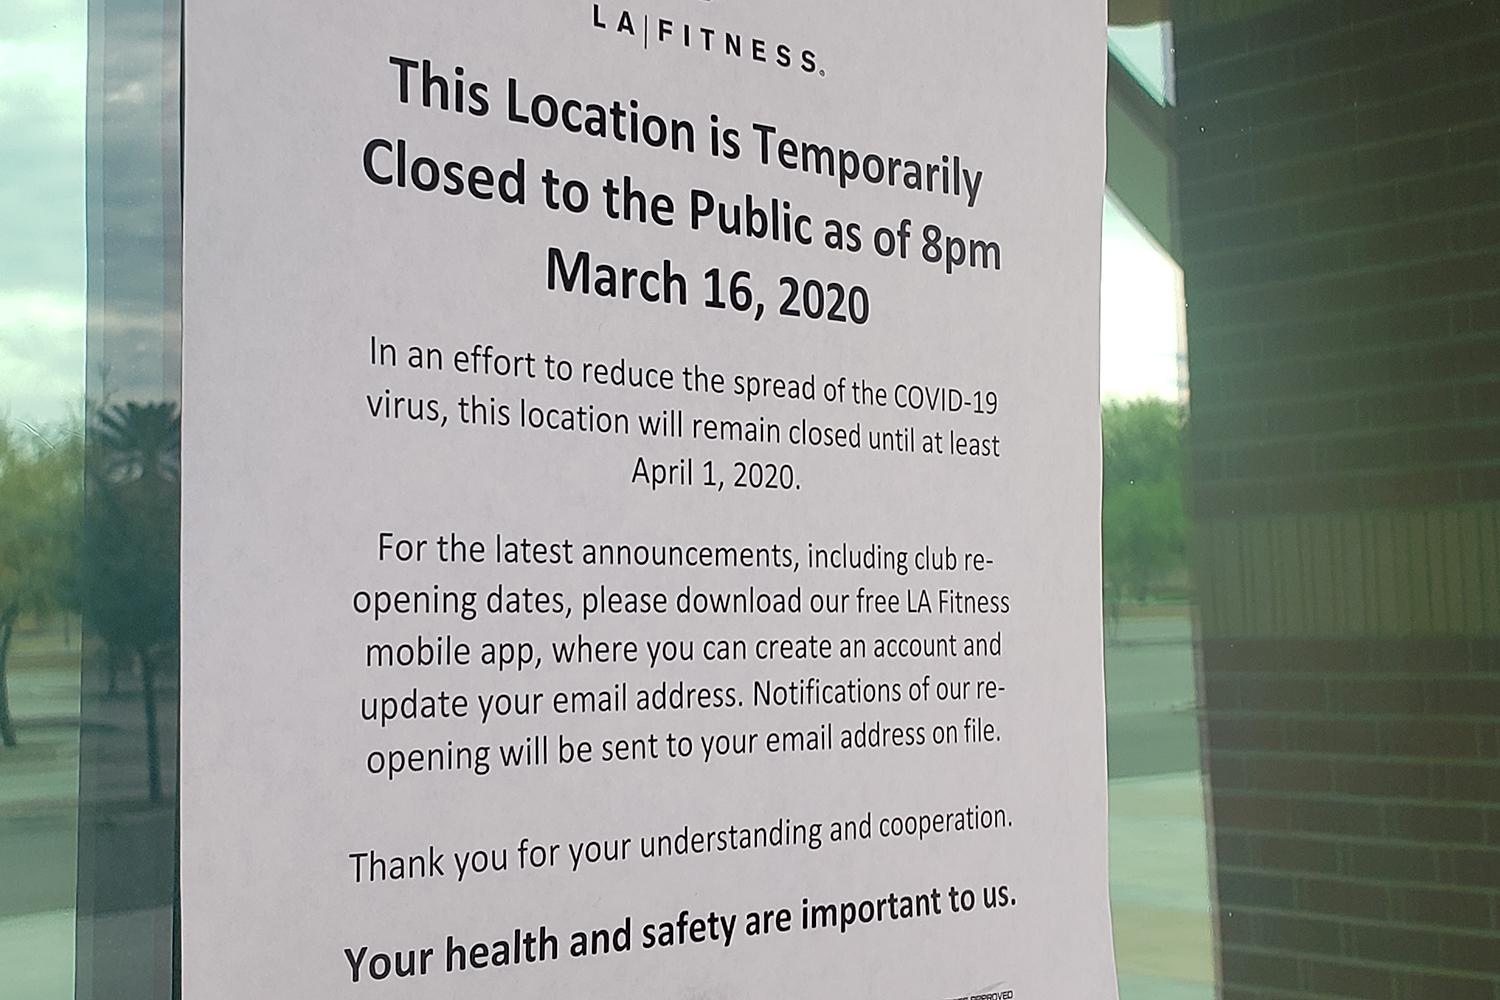 LA Fitness closed coronavirus